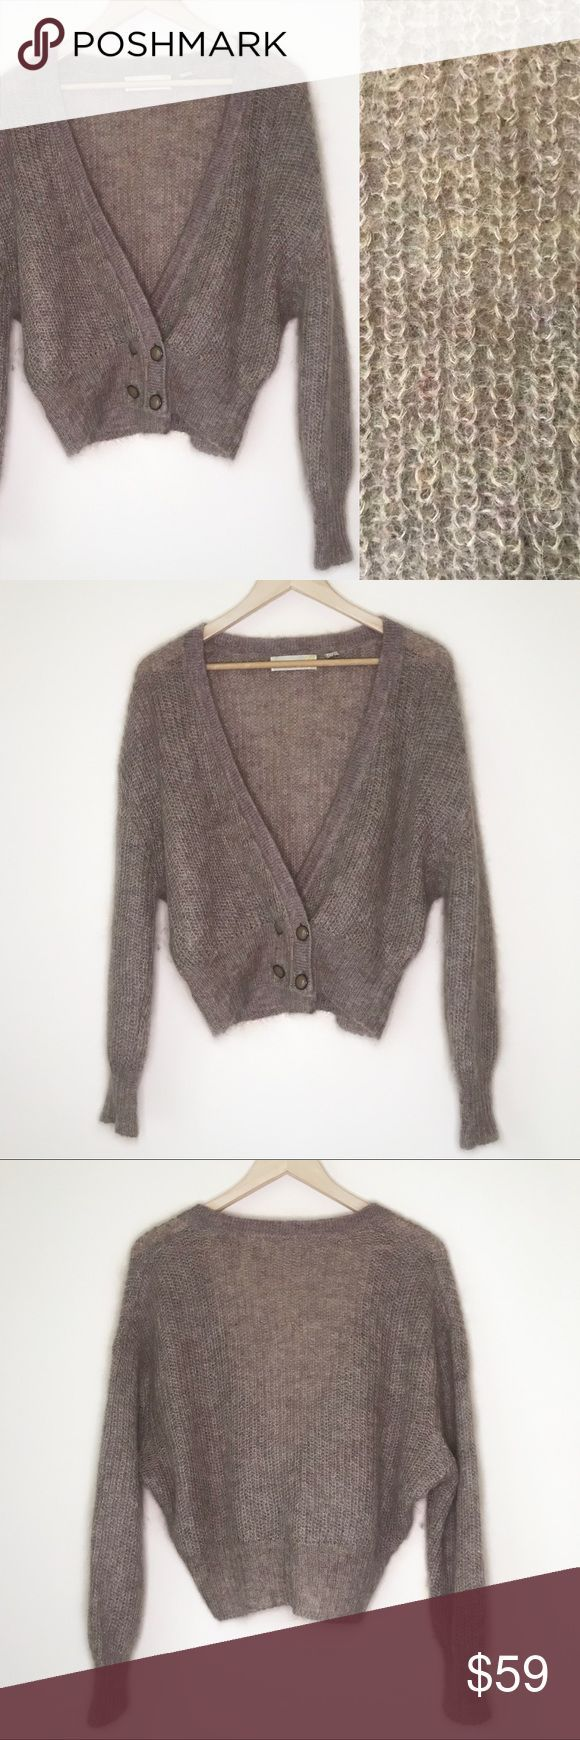 Anthropologie Charlie & Robin Buttoned Cardigan Item: Anthropologie Charlie & Ro…